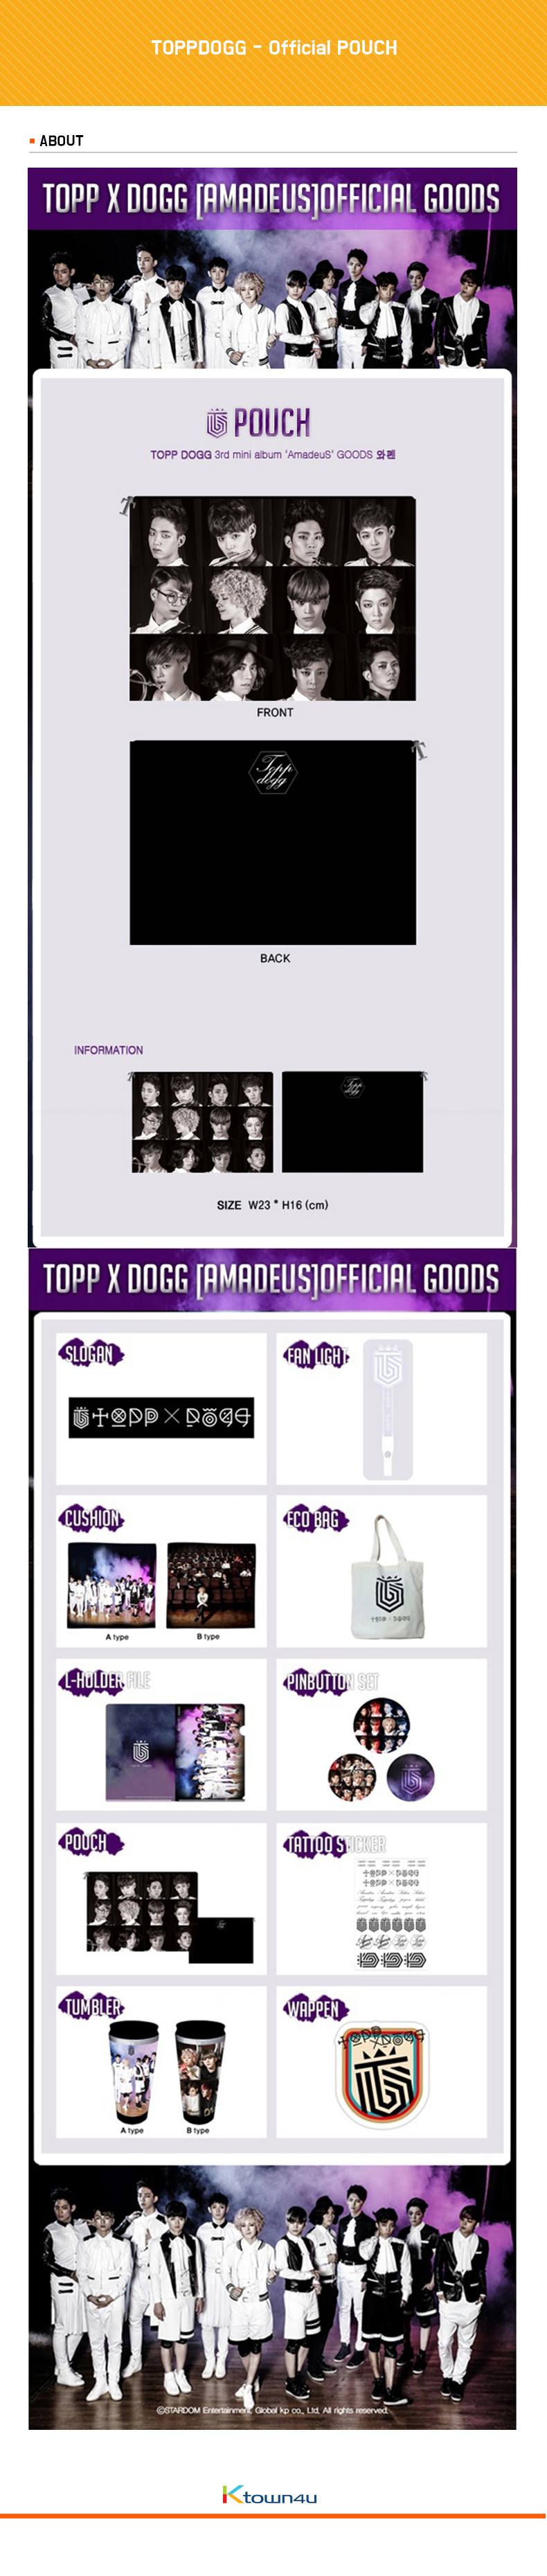 TOPPDOGG - Official POUCH